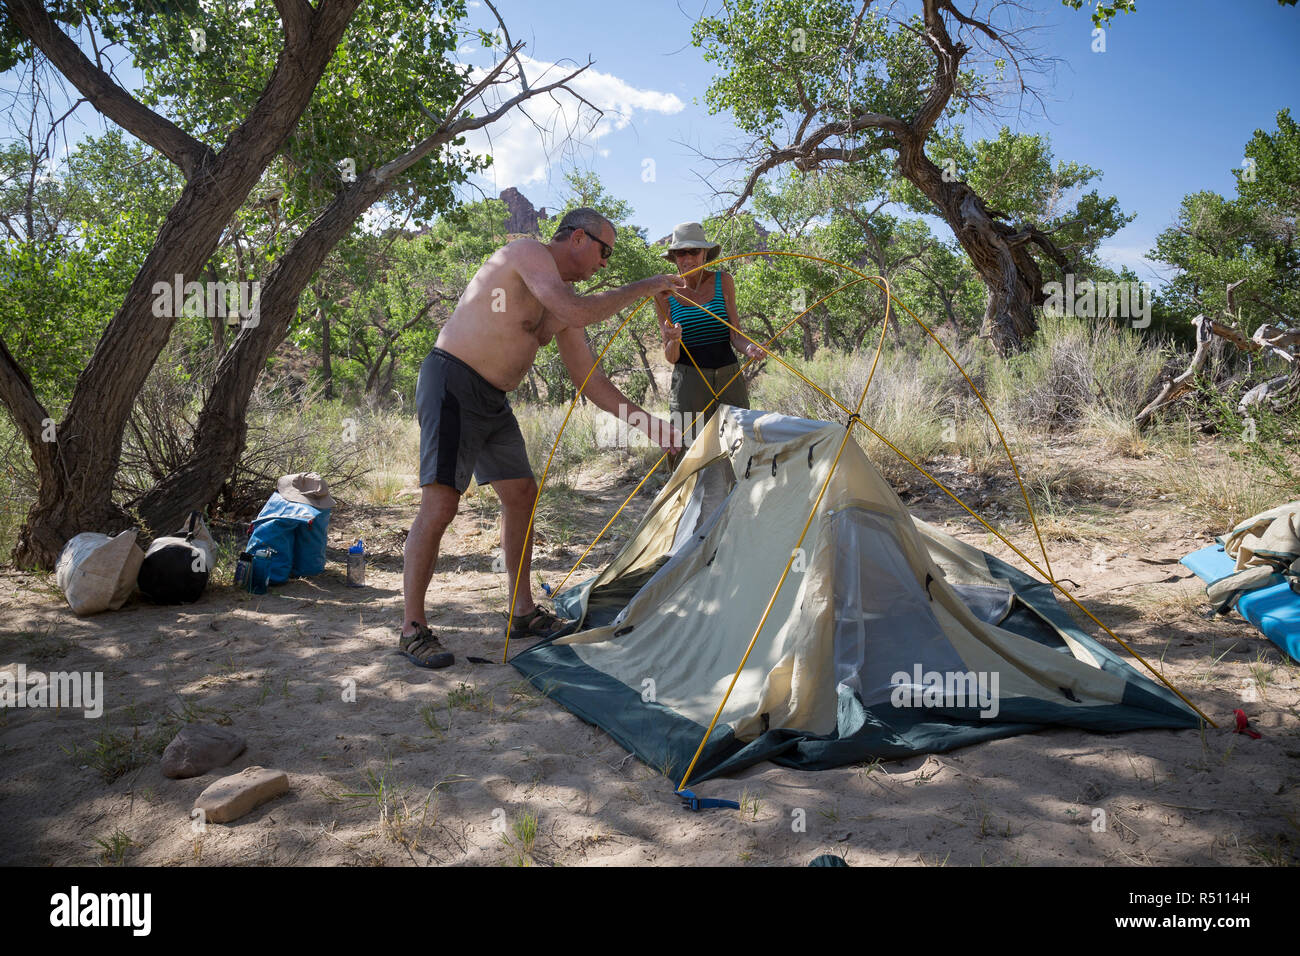 A man and woman setting up a tent at camp during a Green river rafting trip, Desolation/Gray Canyon section, Utah, USA - Stock Image